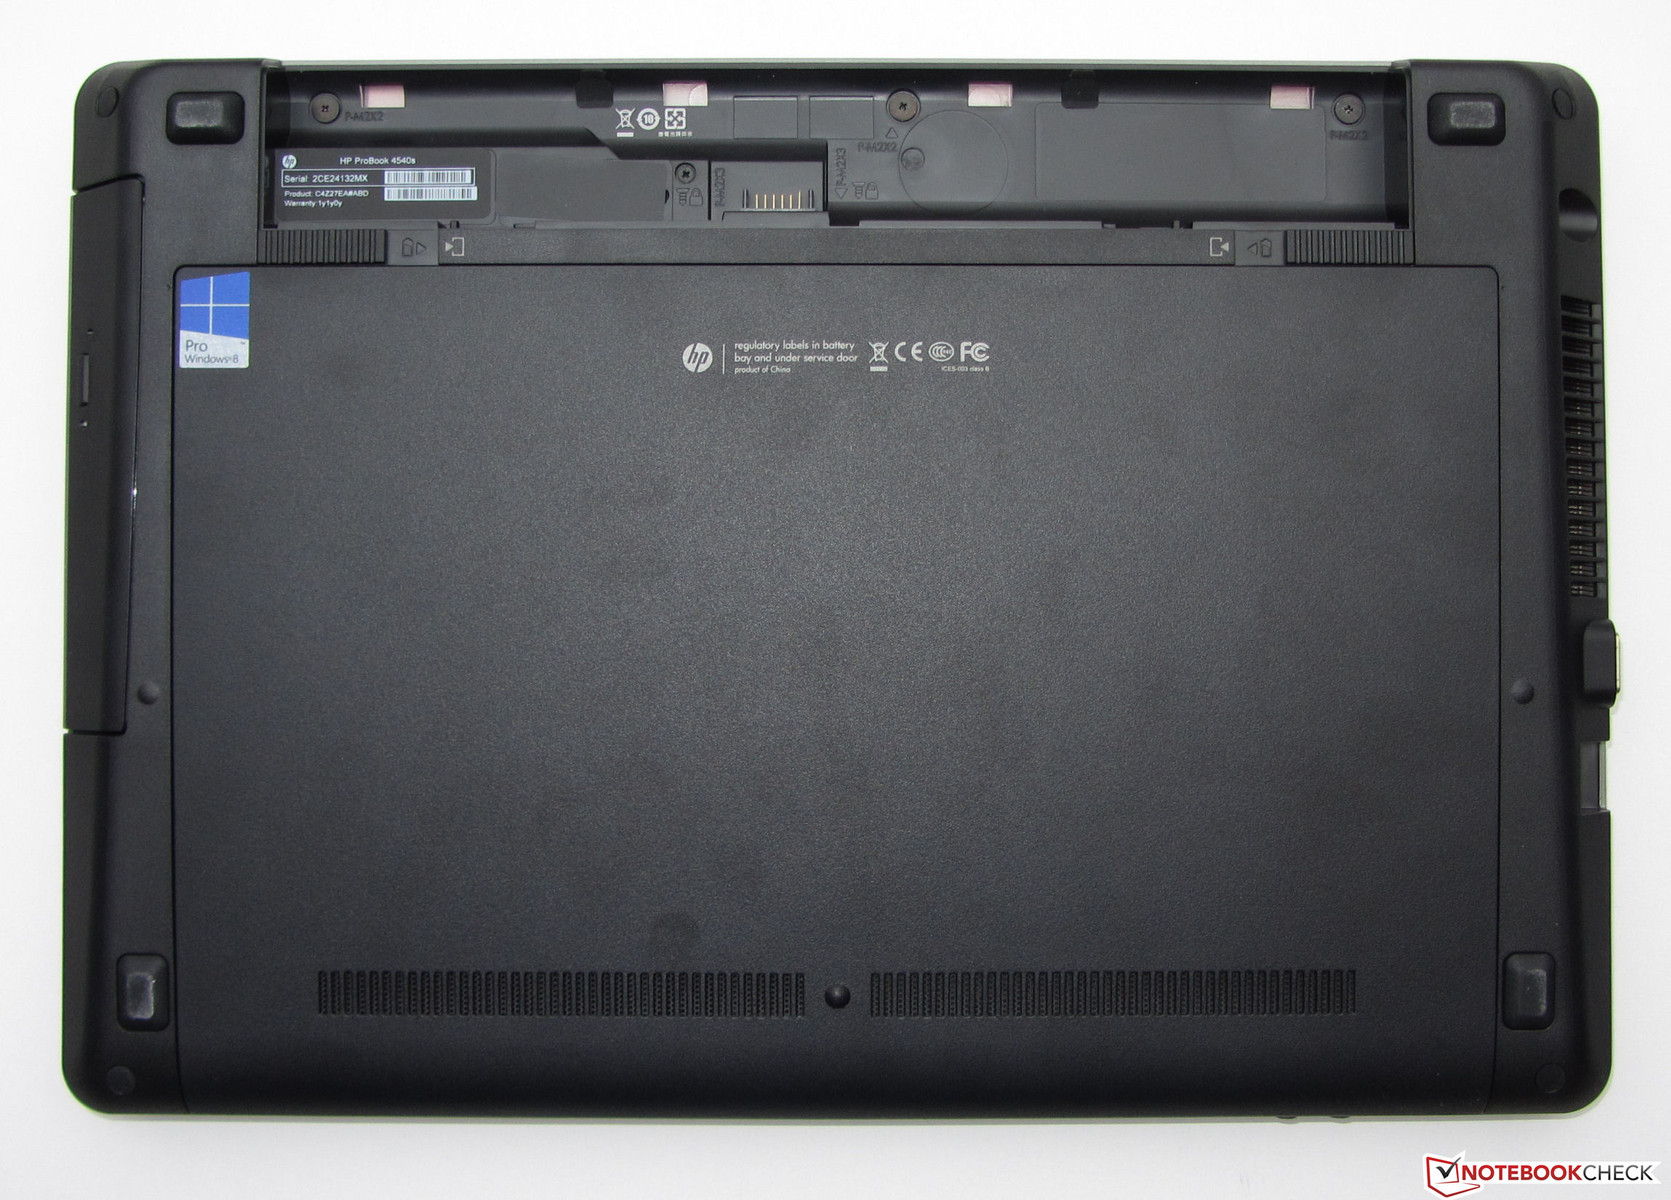 Acer Aspire 4540 Notebook Synaptics Touchpad Windows 7